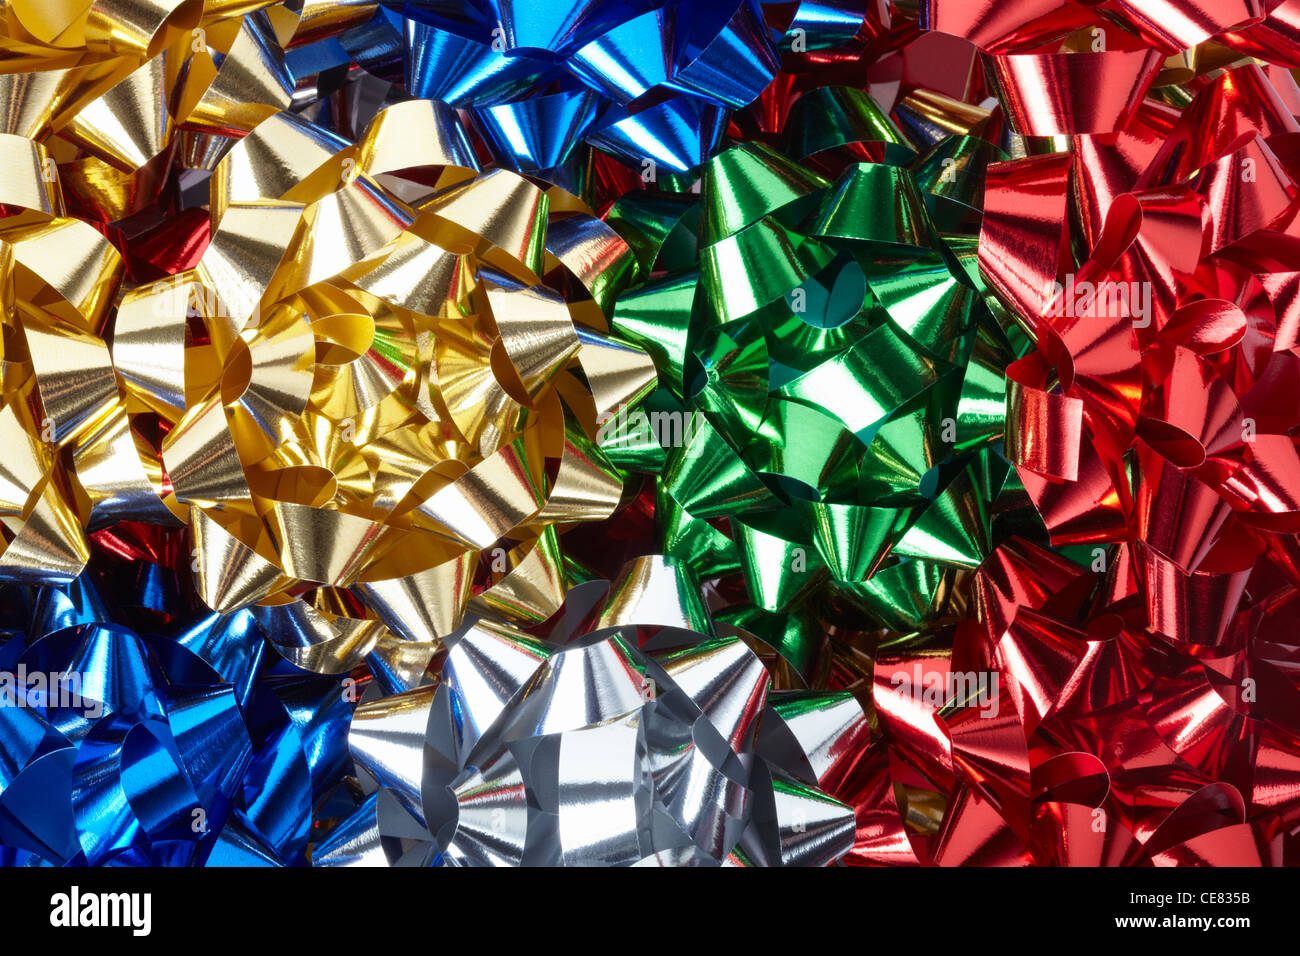 Gift bows background - Stock Image